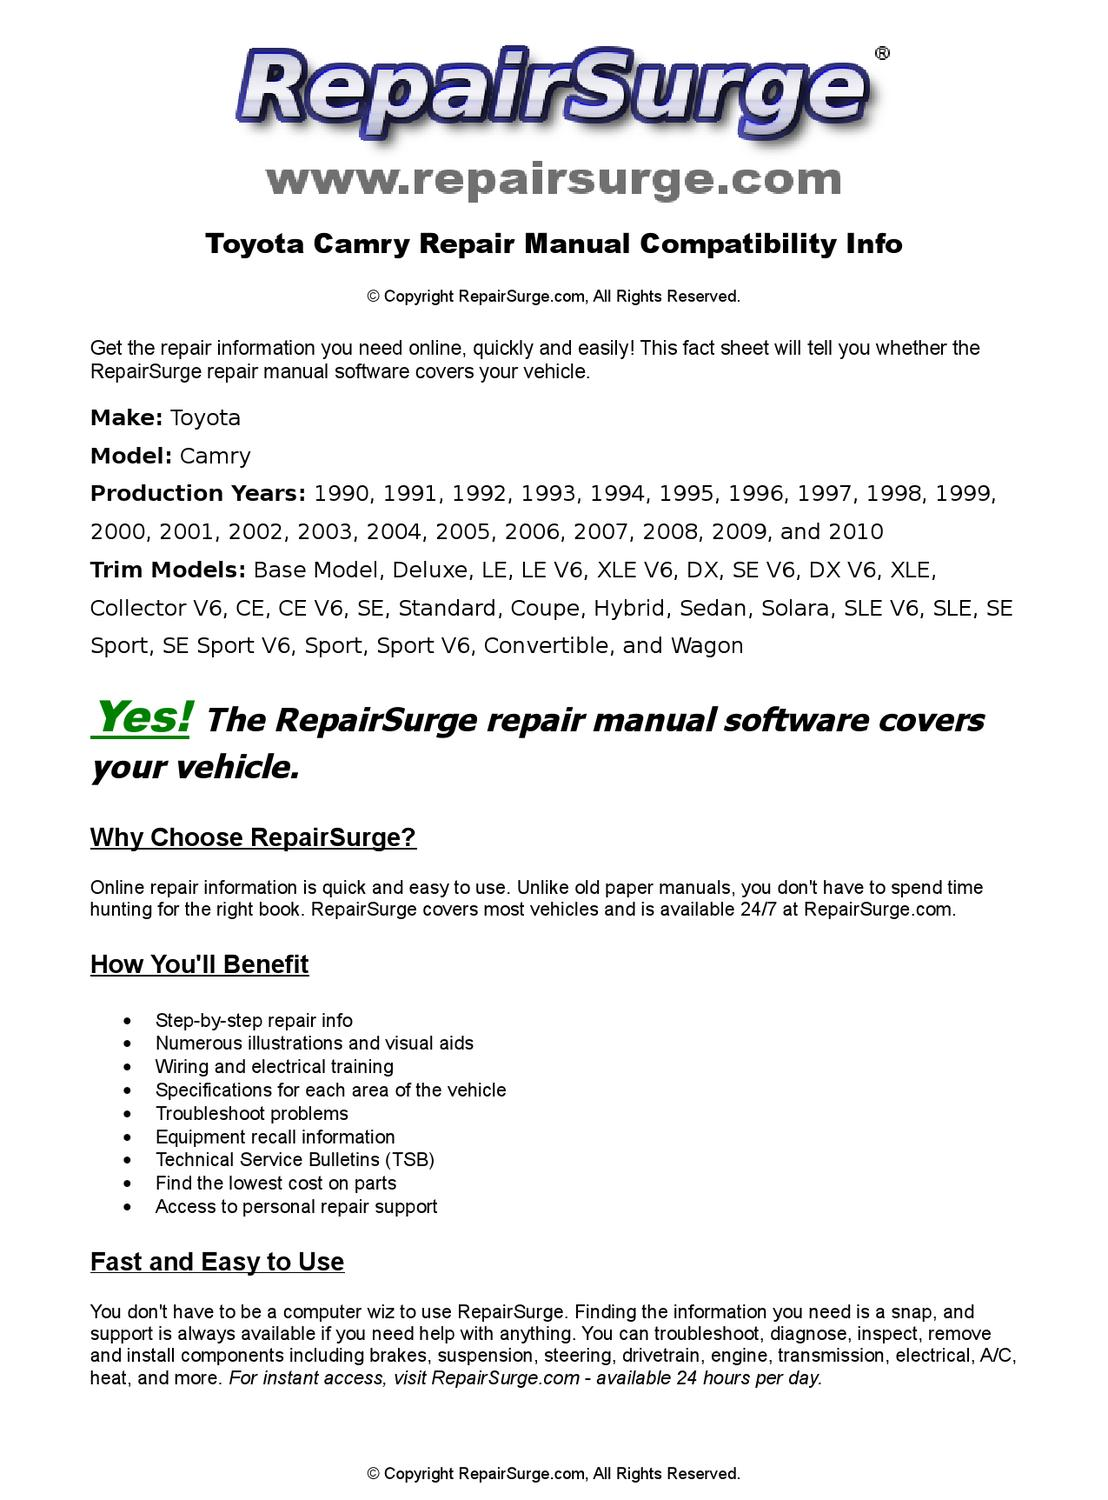 Toyota Camry Online Repair Manual For 1990  1991  1992  1993  1994  1995  1996  1997  1998  1999